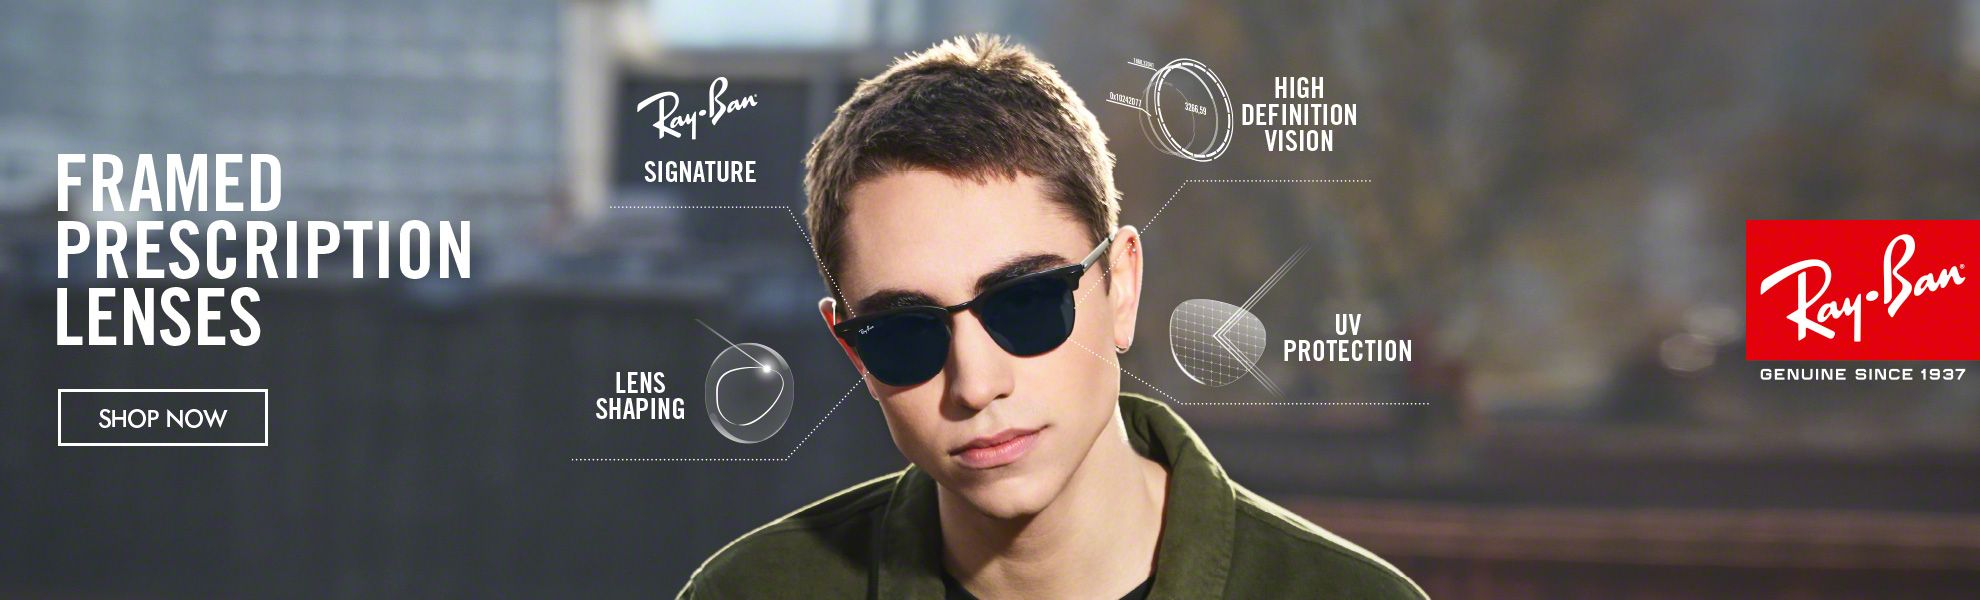 Shop now Ray-Ban colletion.